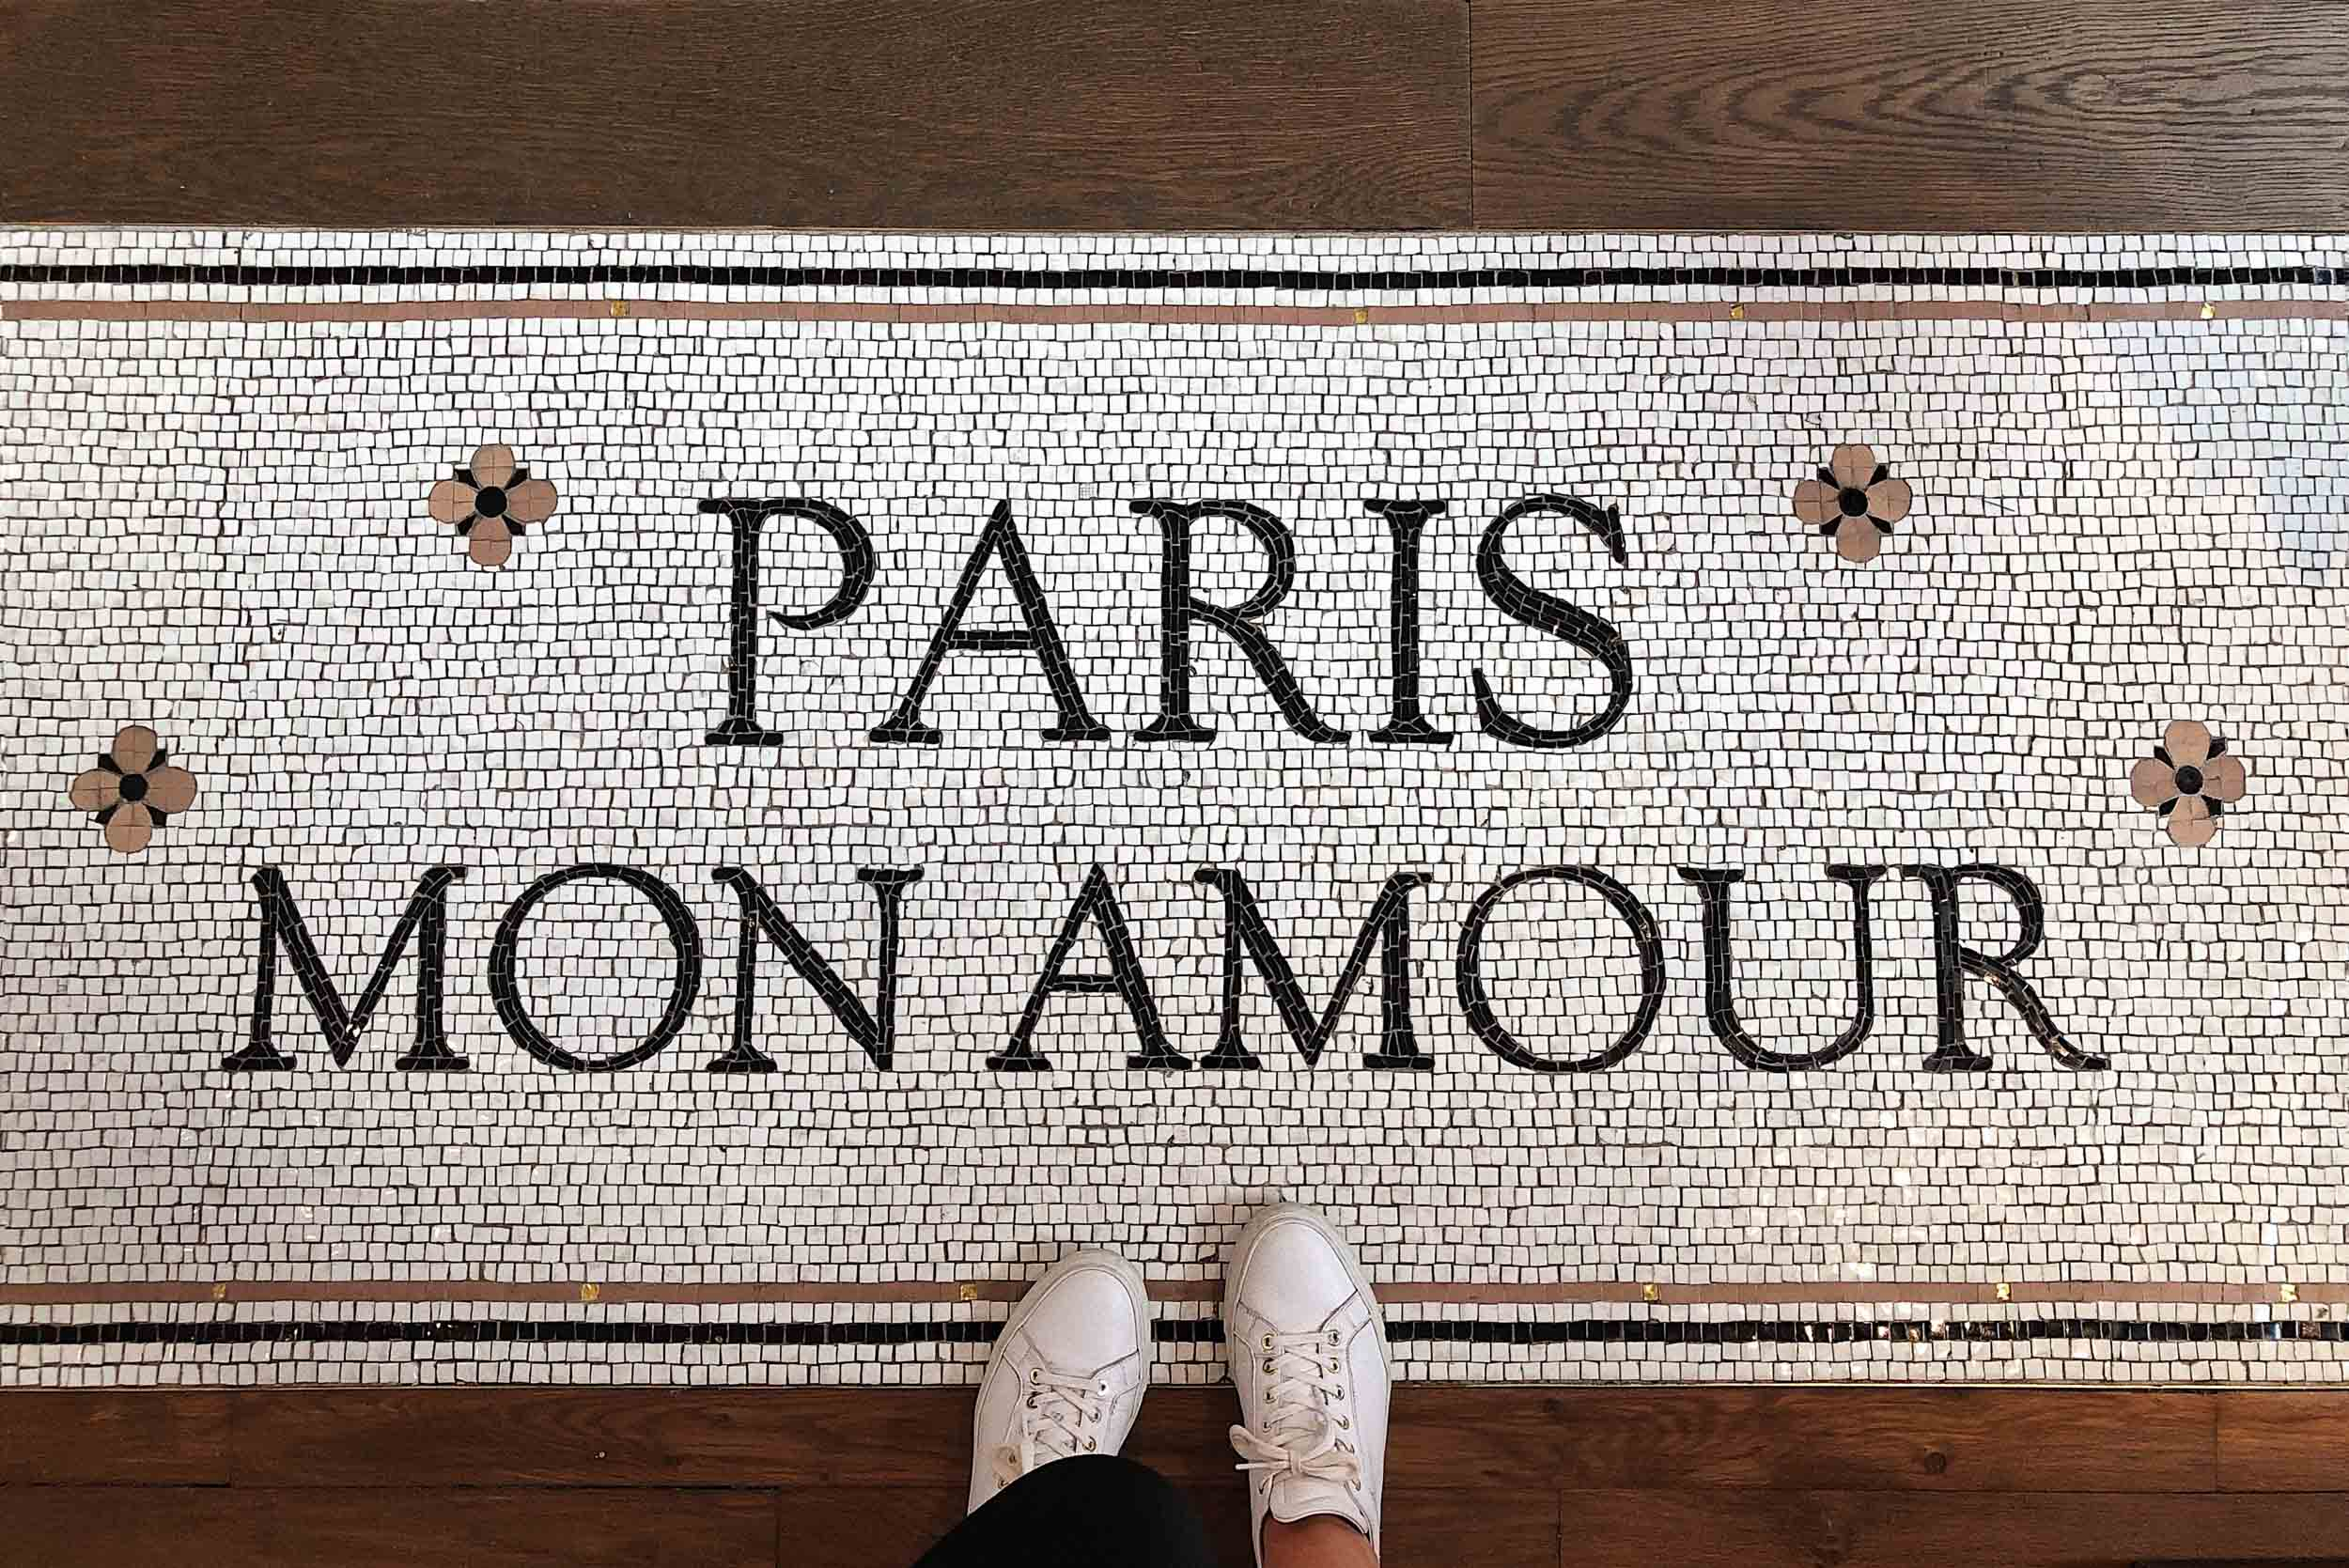 Everything You Need to Know About Paris' 1st and 2nd Arrondissements